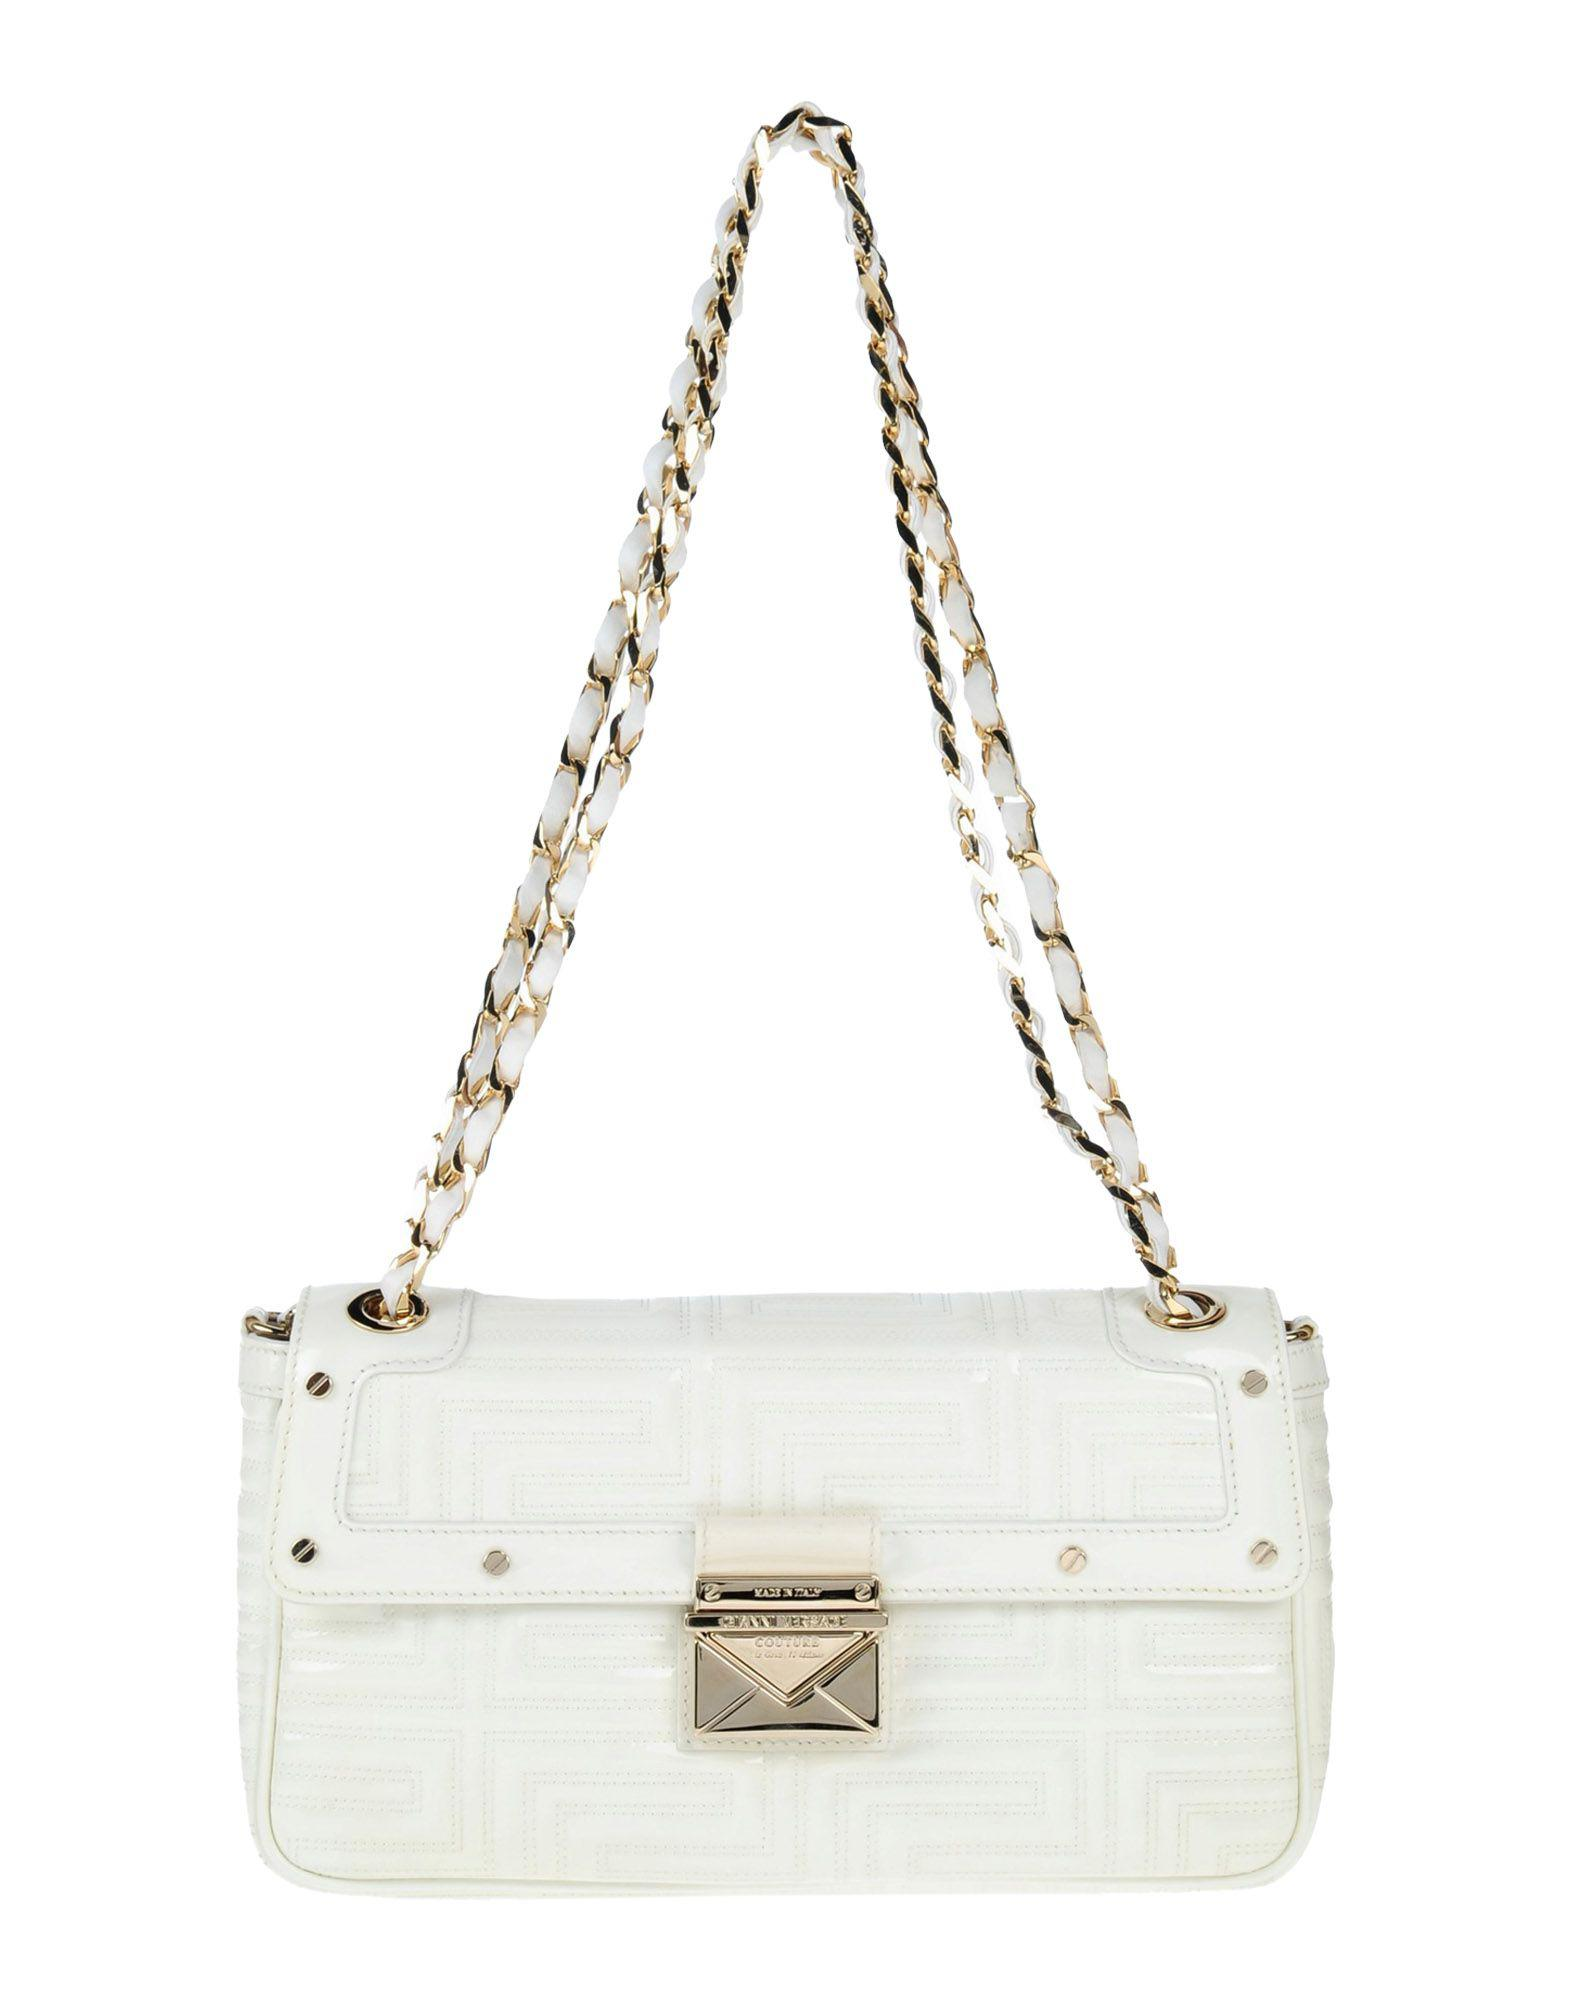 c64097483a Lyst - Gianni Versace Couture Shoulder Bag in White